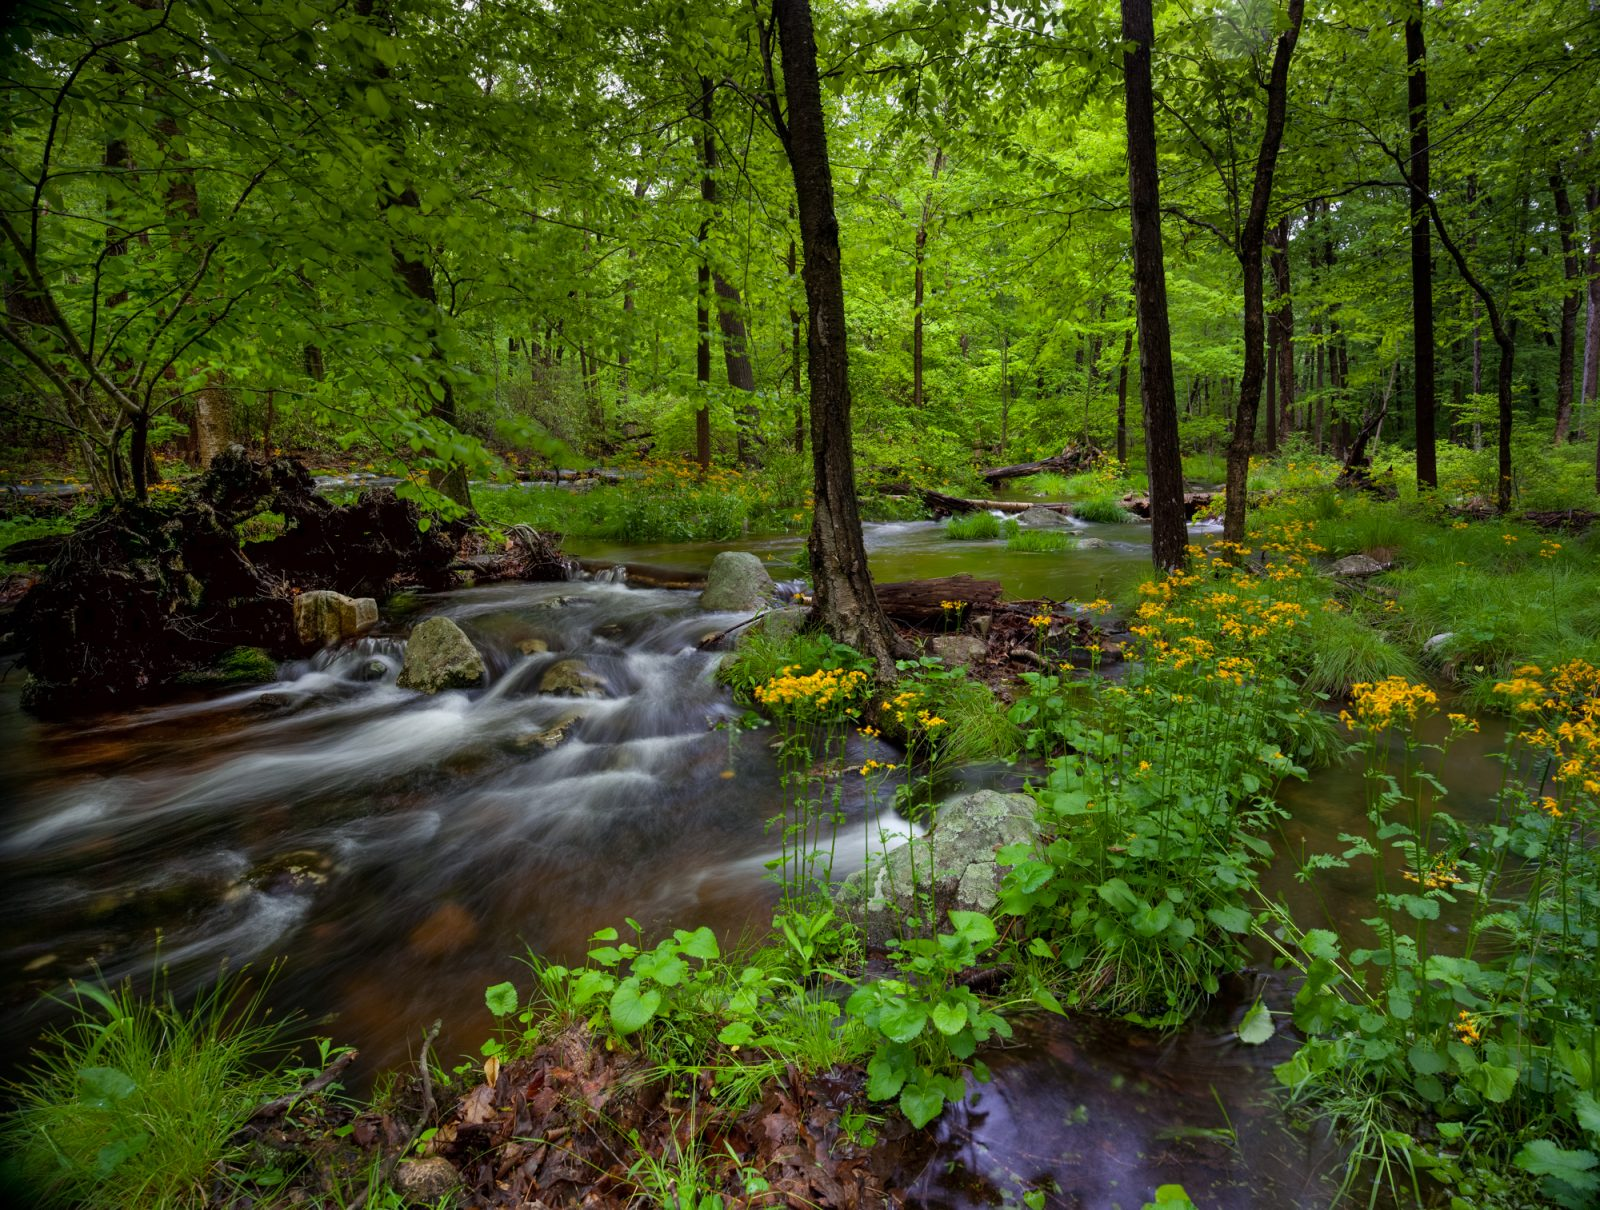 Lush Life in the Forest